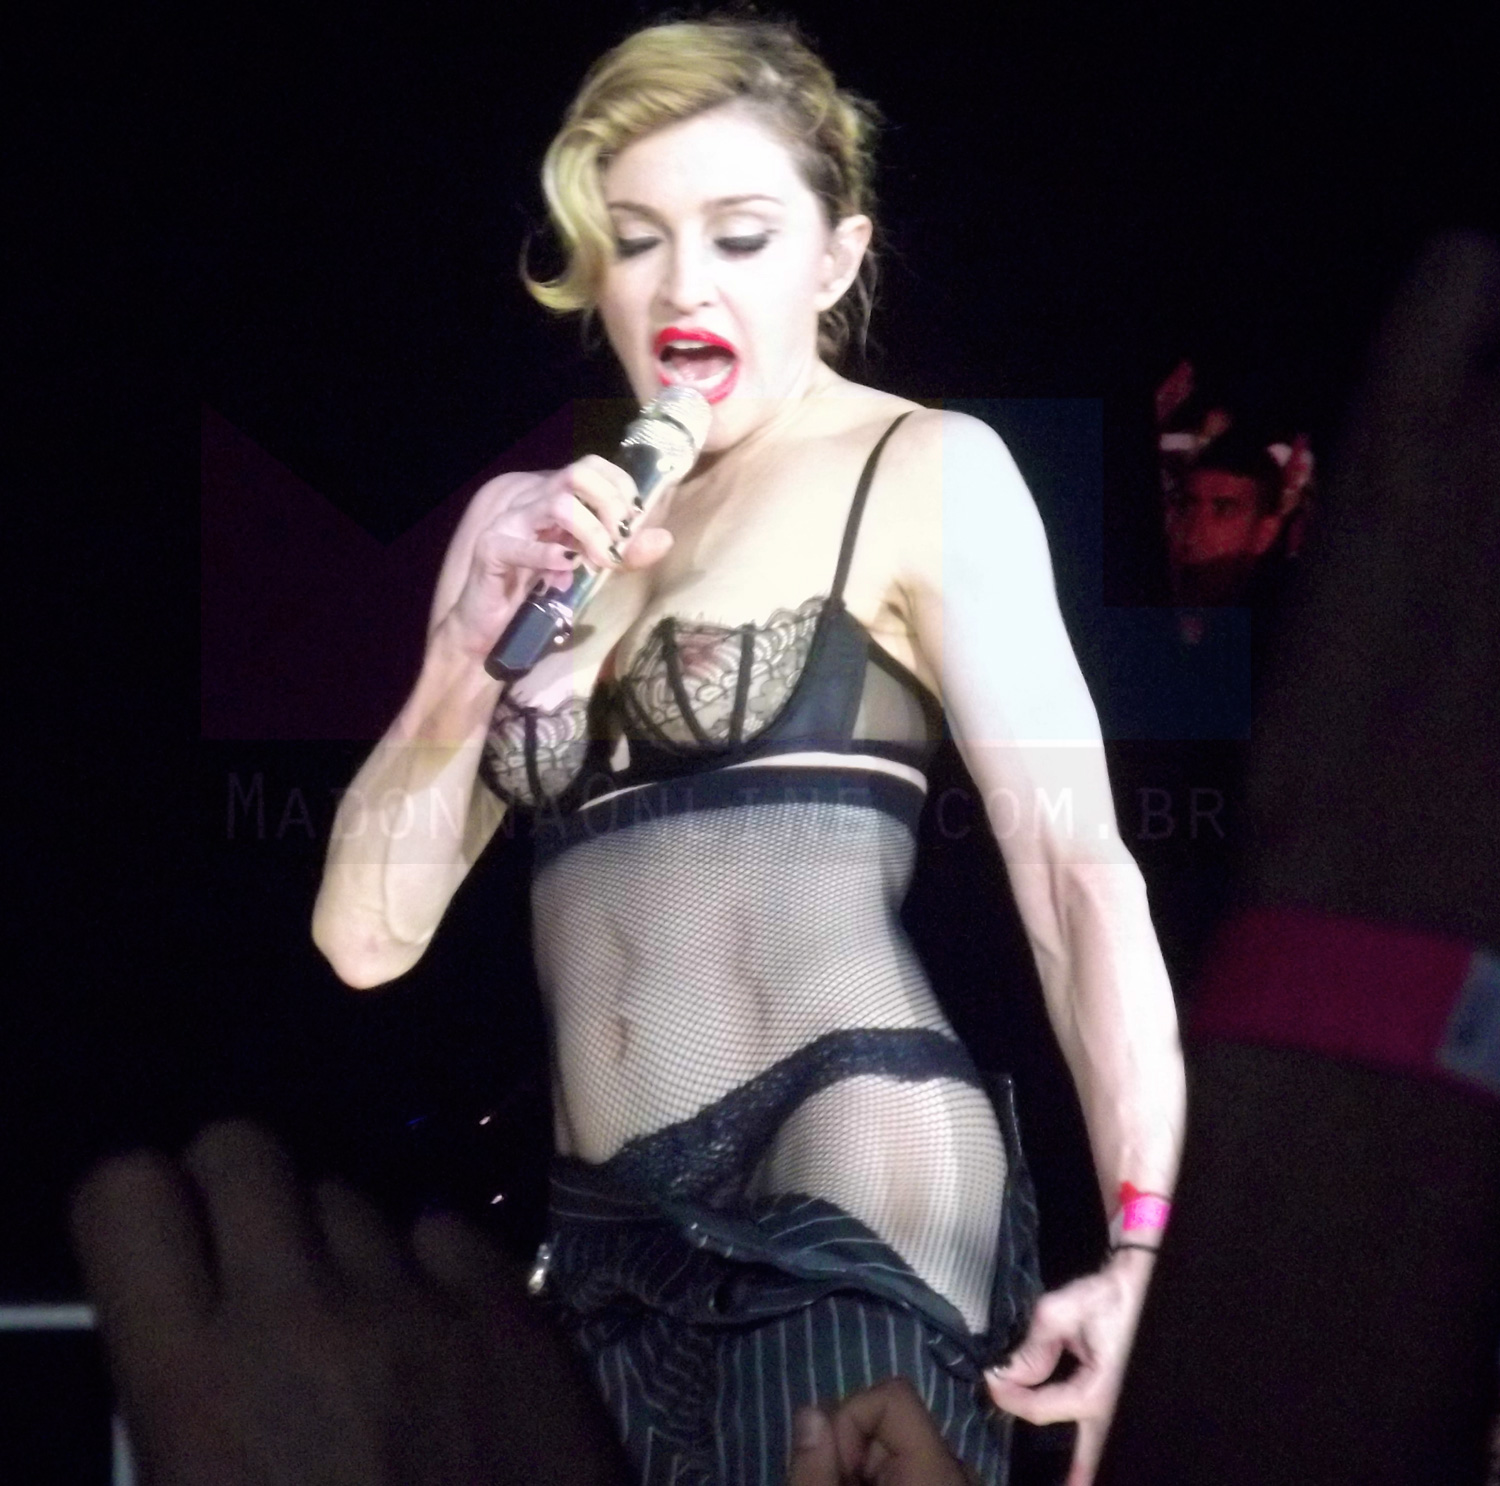 Adult explicit image